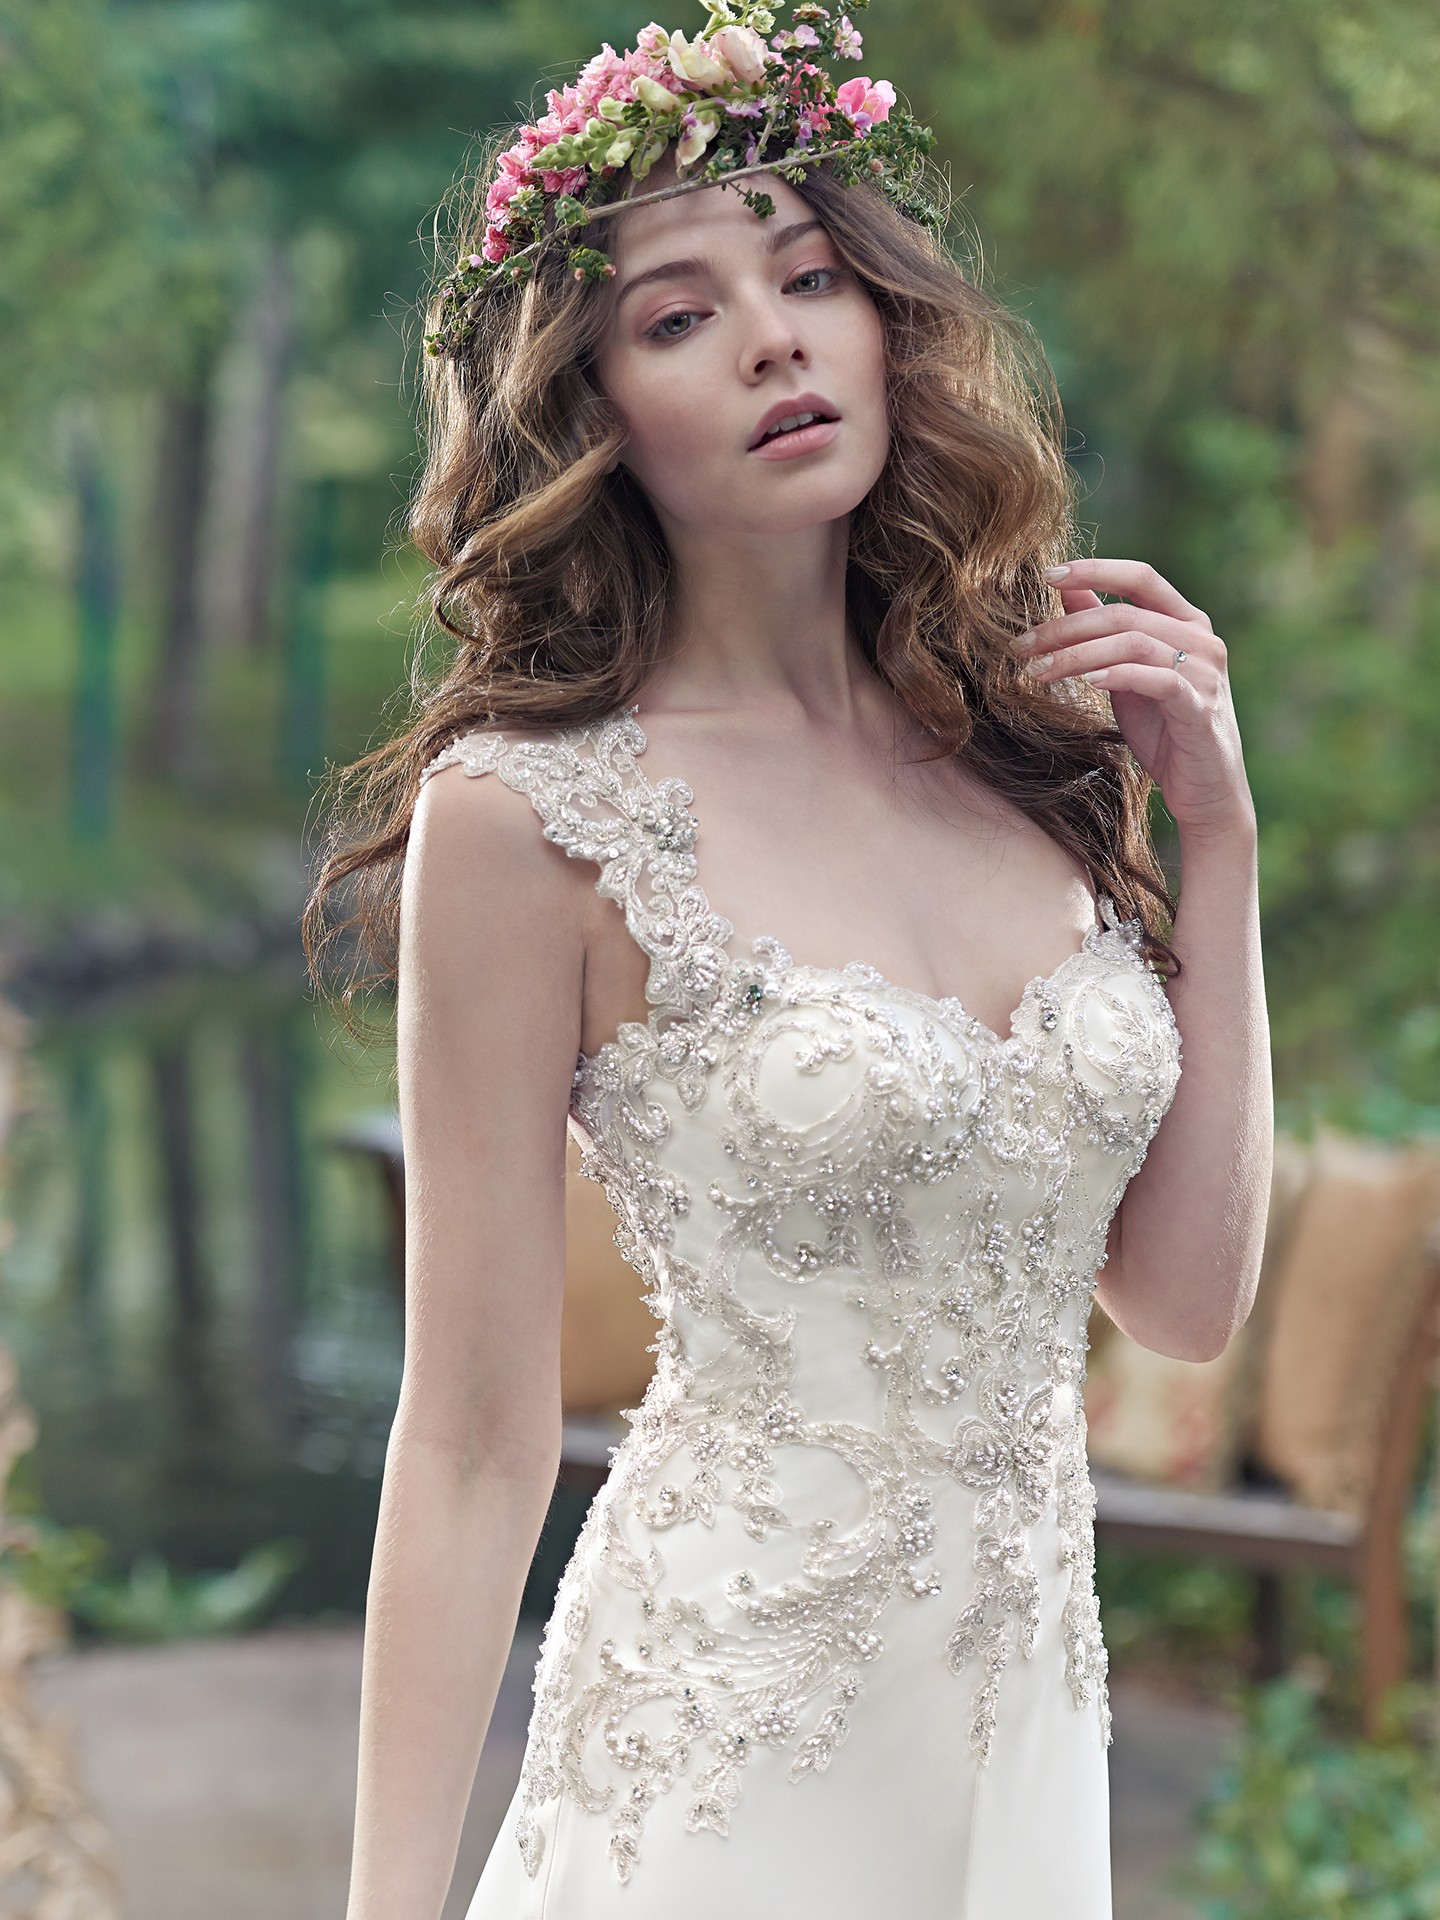 Simple satin wedding dresses love maggie love maggie a double keyhole back takes center stage in this sensual orlando satin sheath wedding dress featuring a swarovski crystal lace bodice sweetheart neckline ombrellifo Images